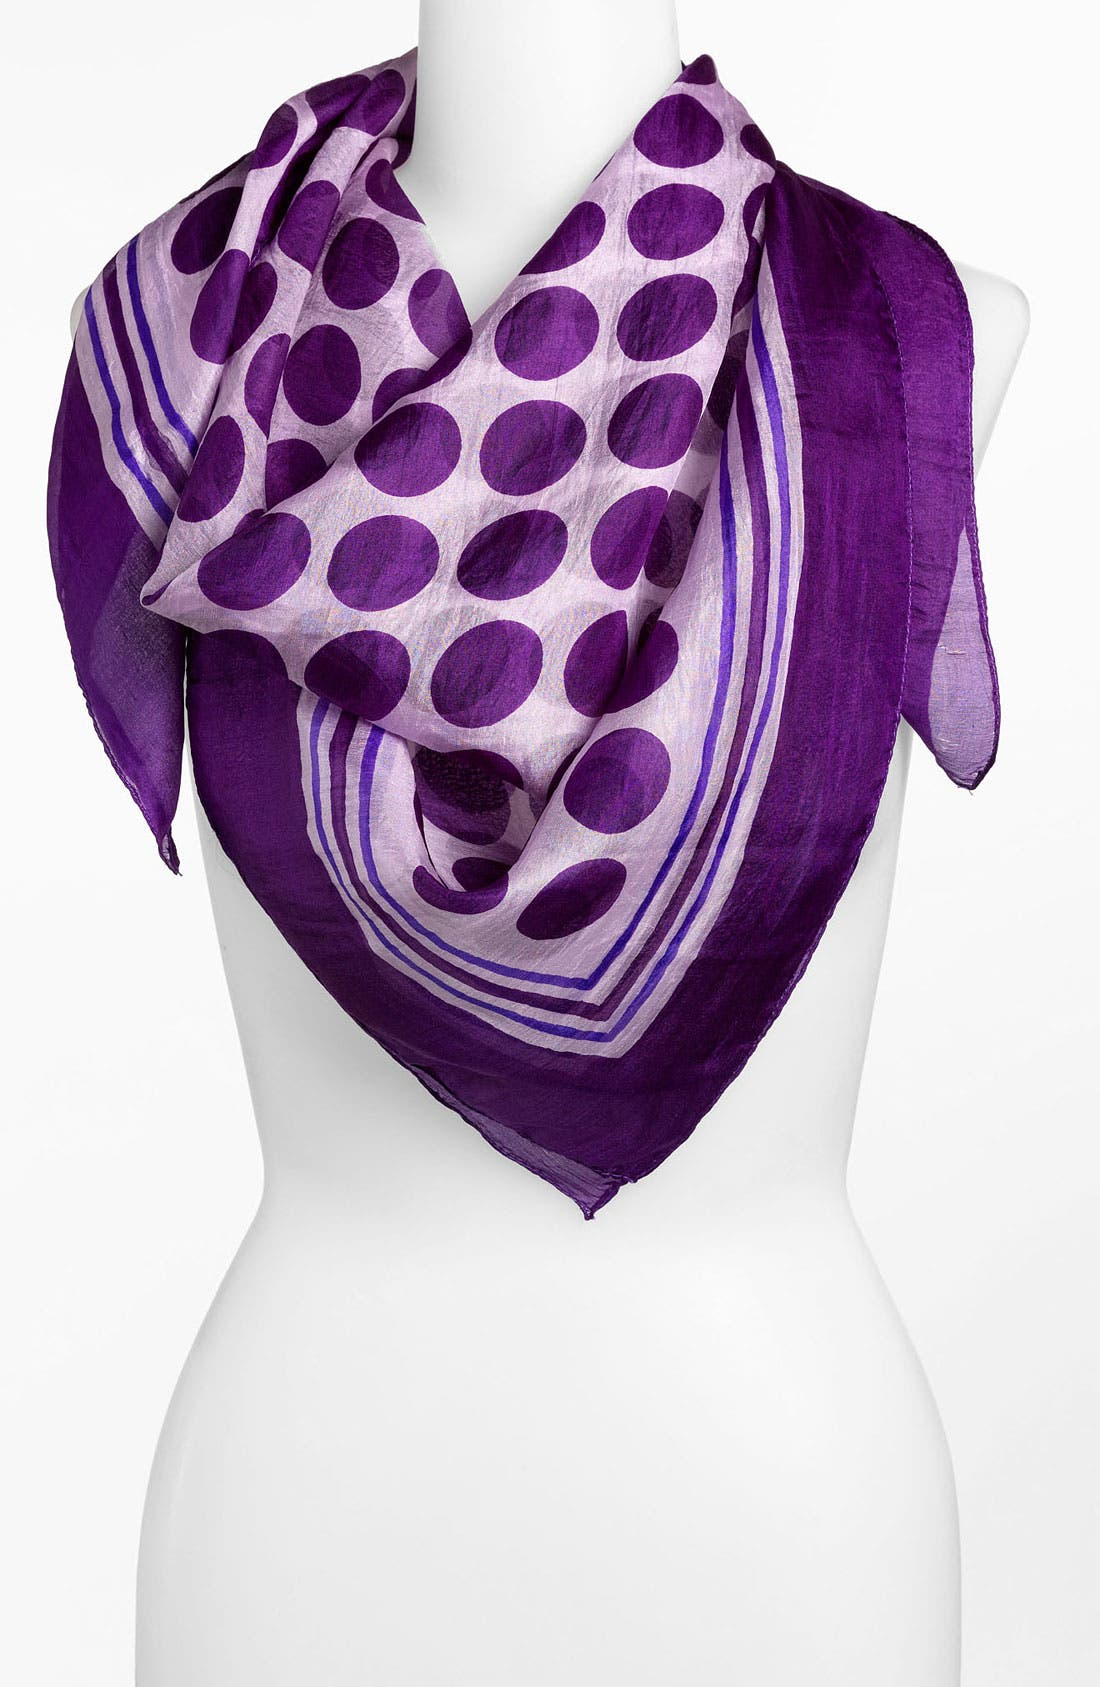 Alternate Image 1 Selected - Janie Besner Polka Dot Silk Scarf